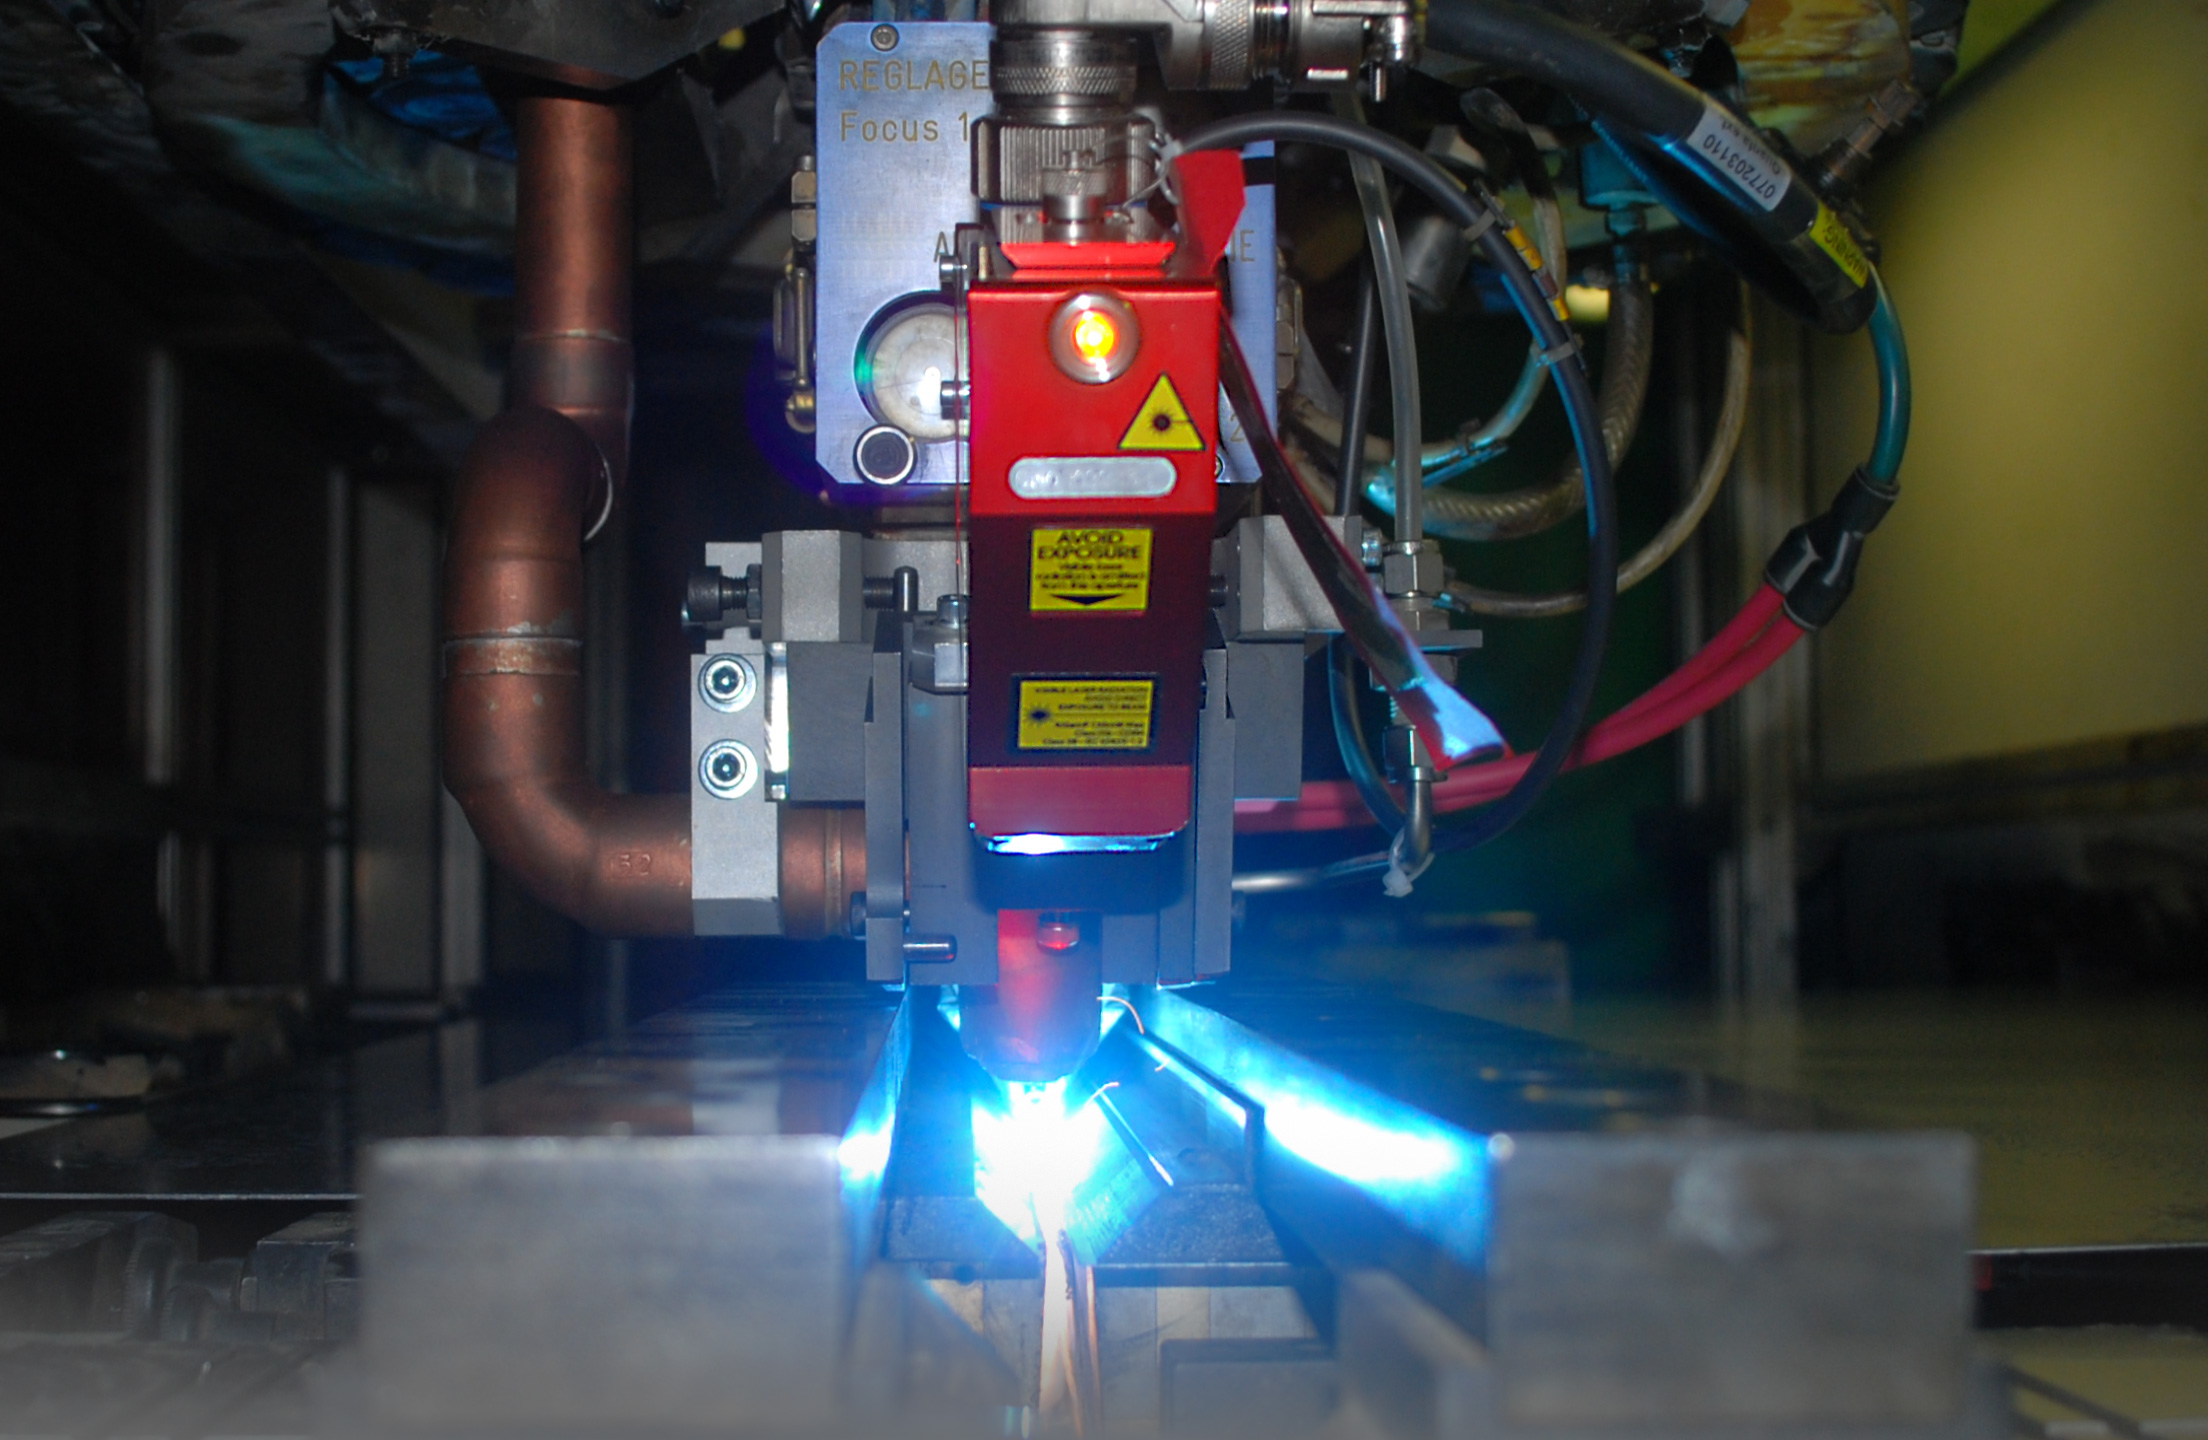 Laser Weld Inspection with LAS-SCAN Image courtesy of Maser Engineering